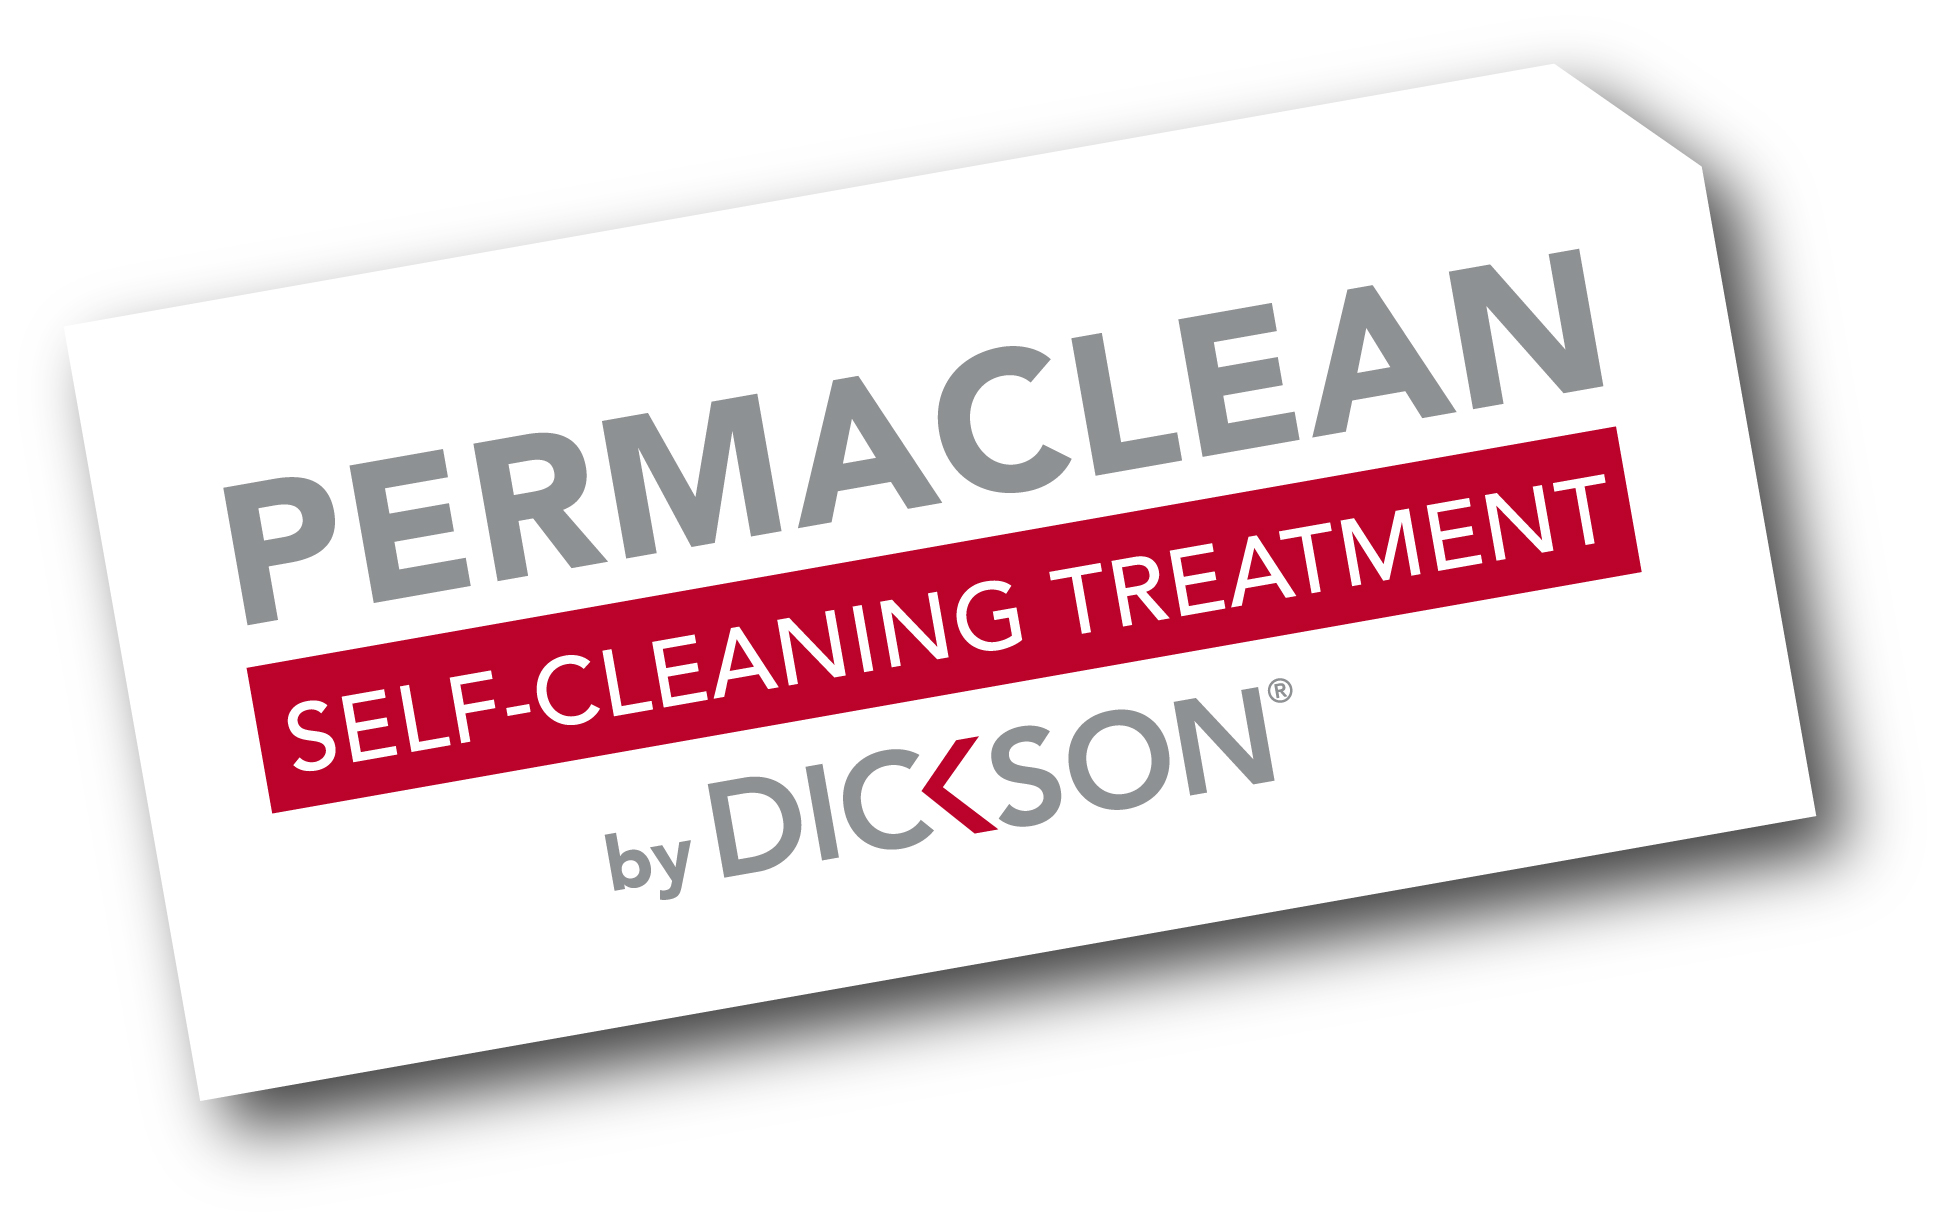 Permaclean self-cleaning treatment